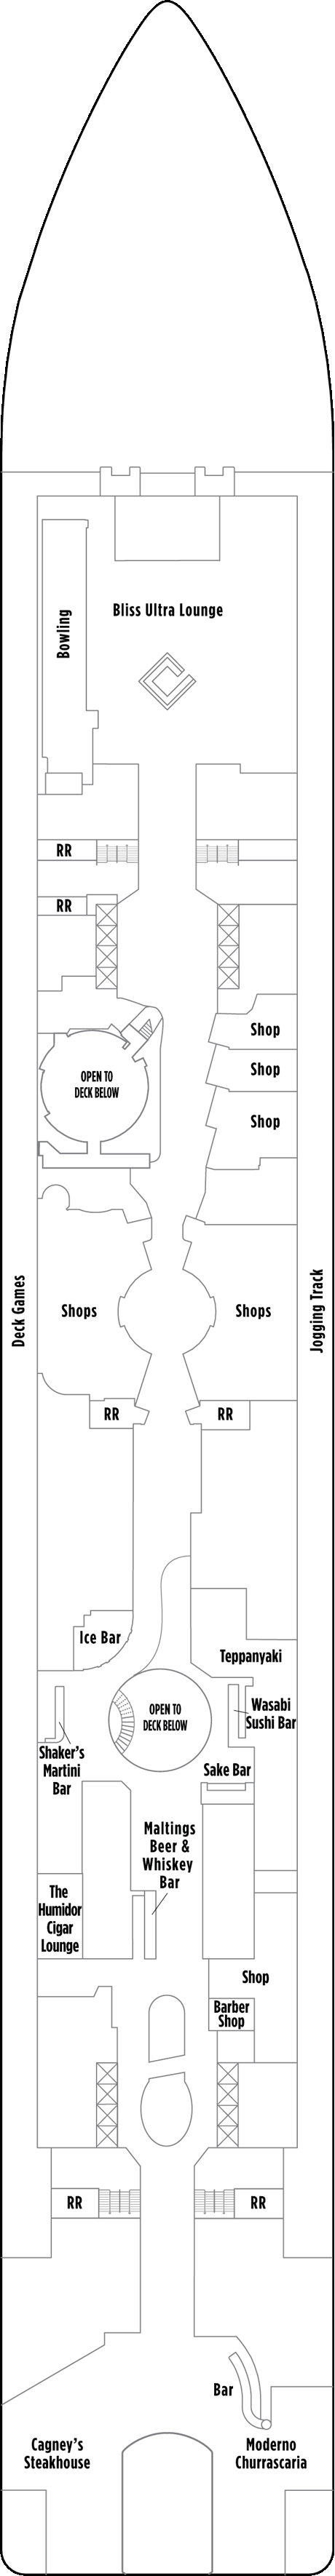 Norwegian Epic Deck 7 layout